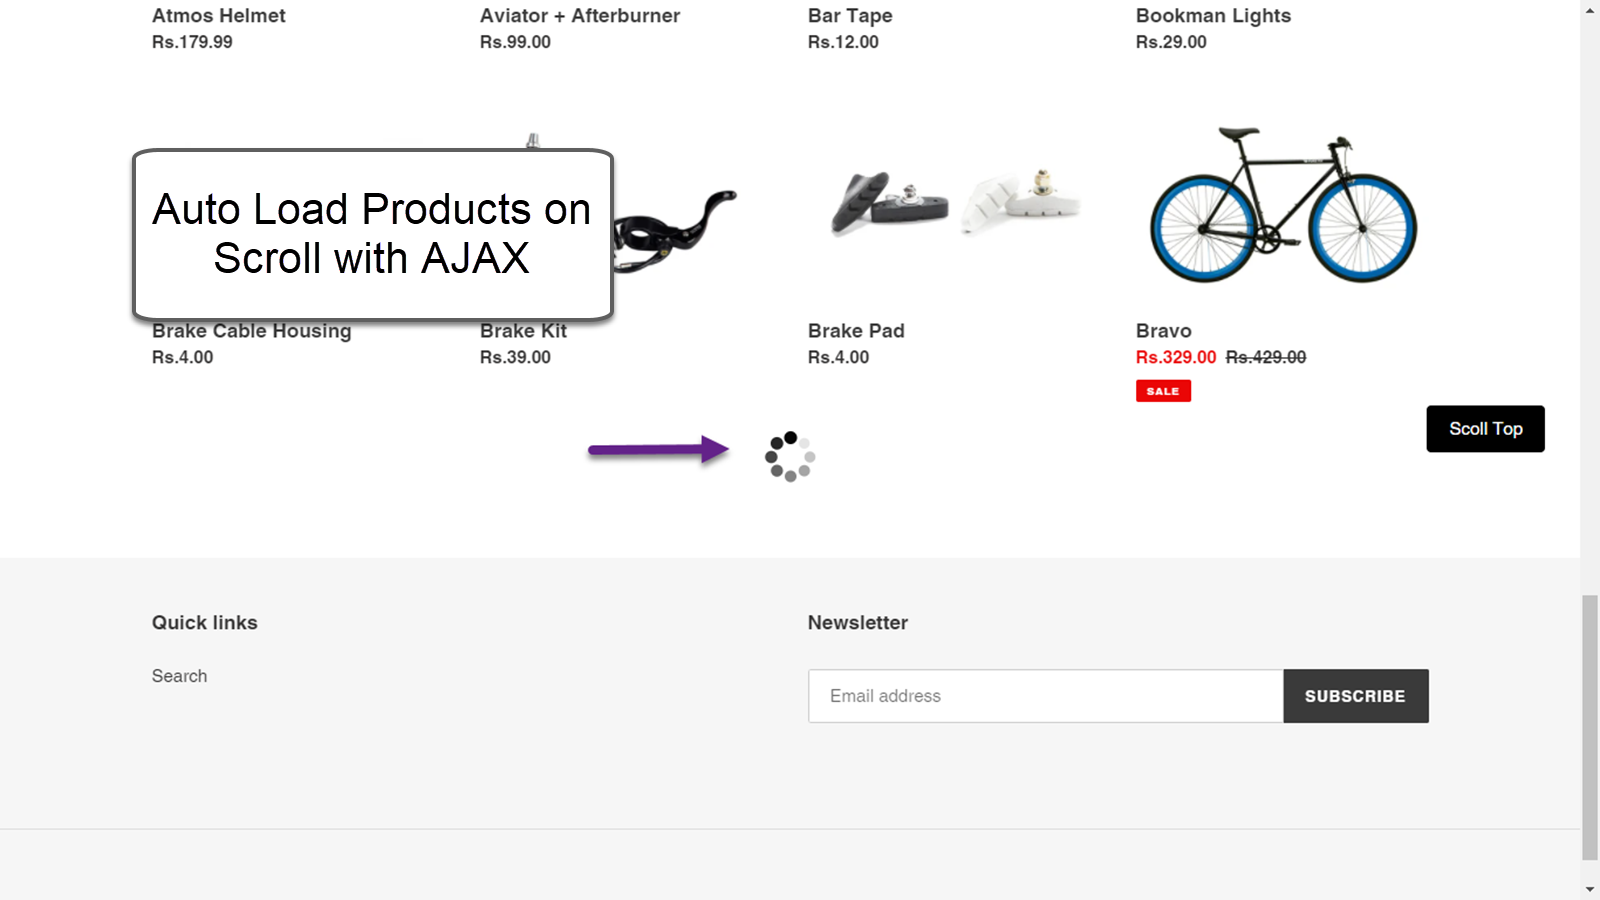 Auto Load Products on Scroll with AJAX